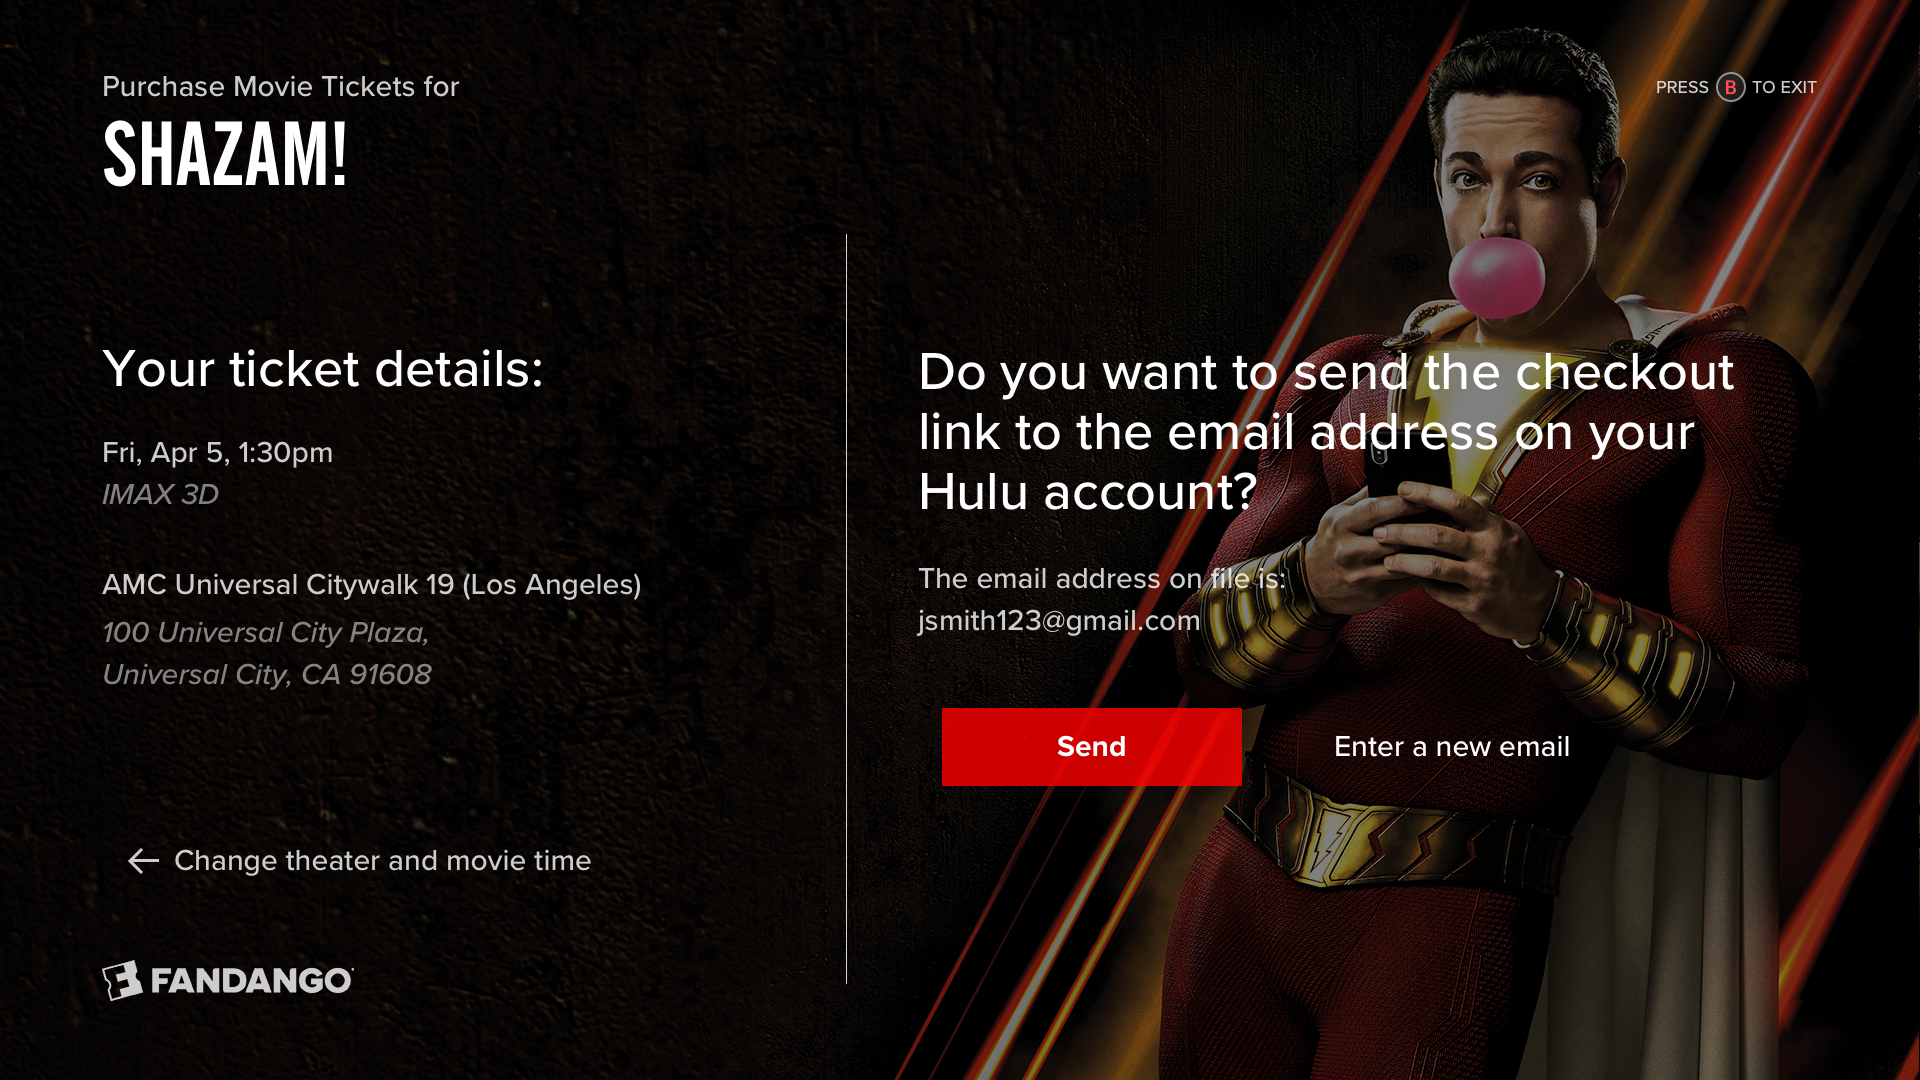 8 - Checkout with Hulu email.png